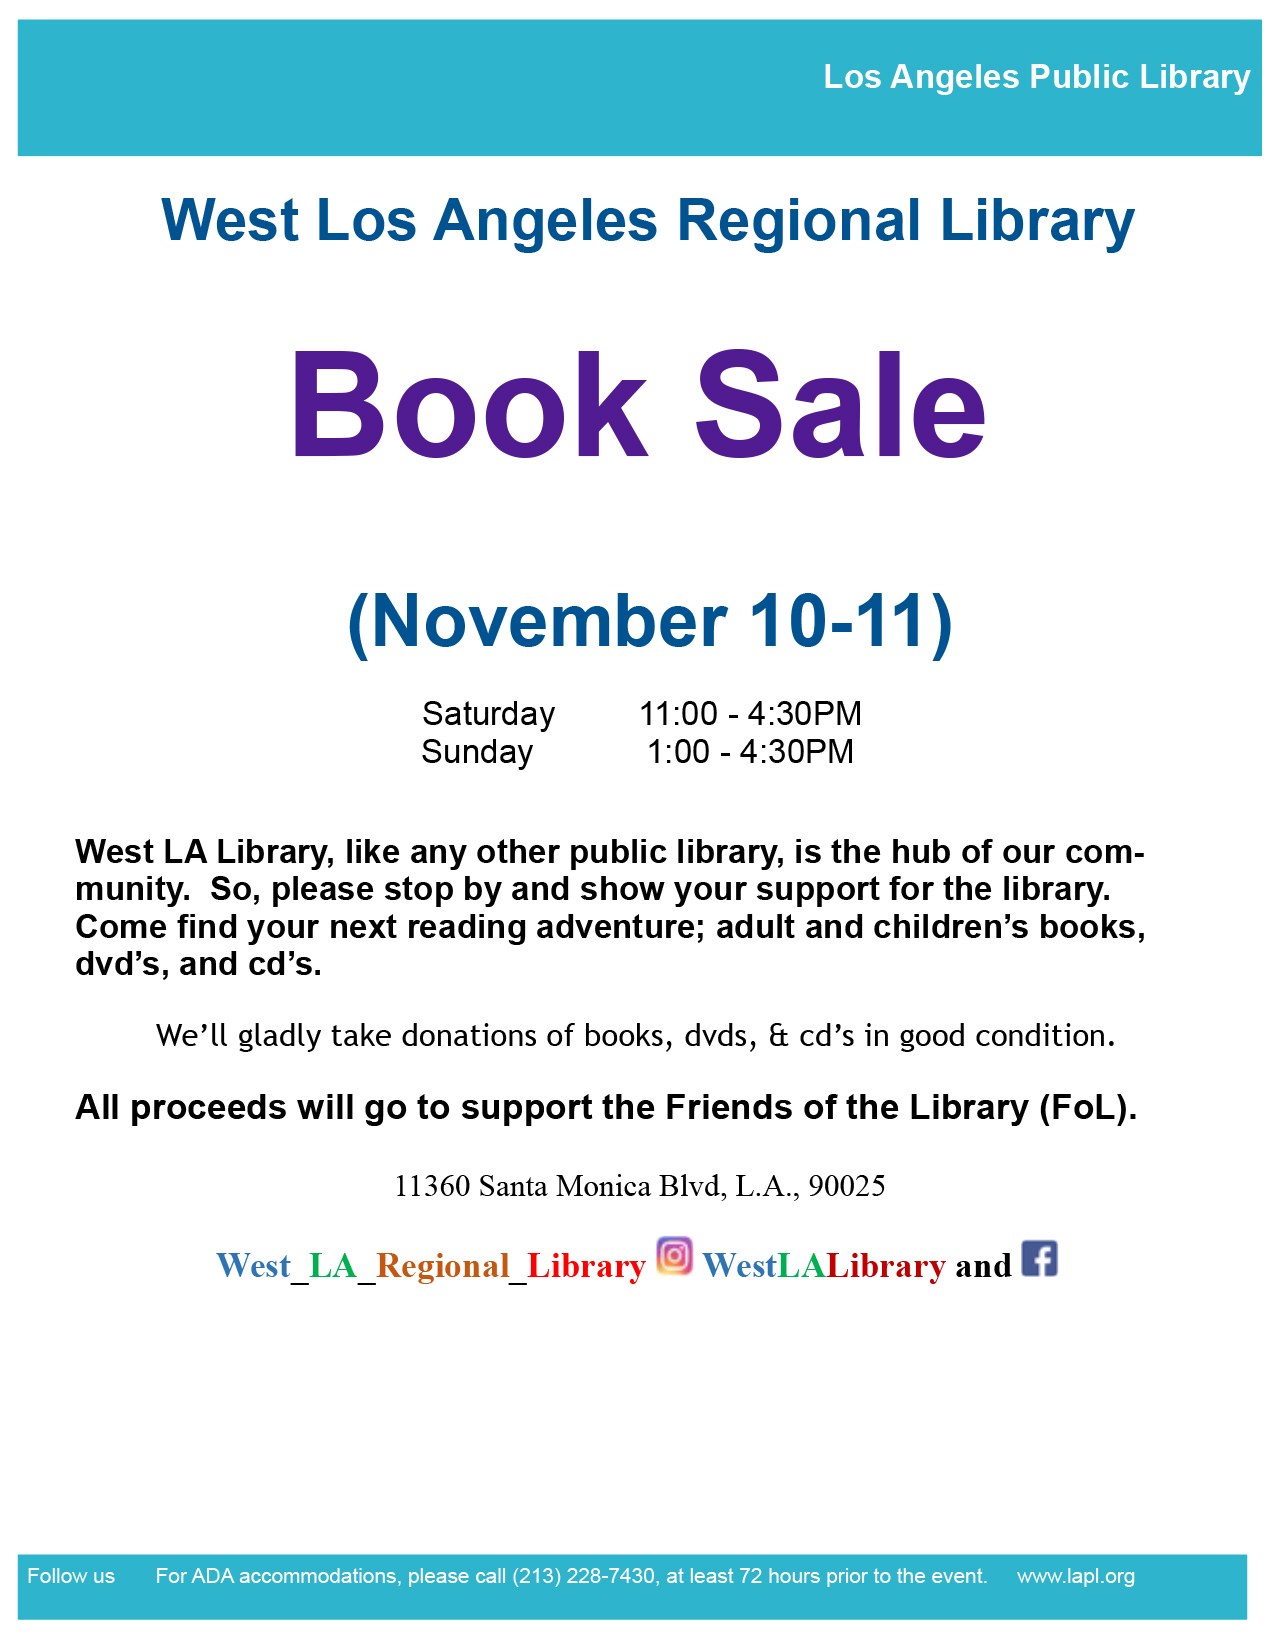 WLAL_BookSale_Nov18wf.jpg